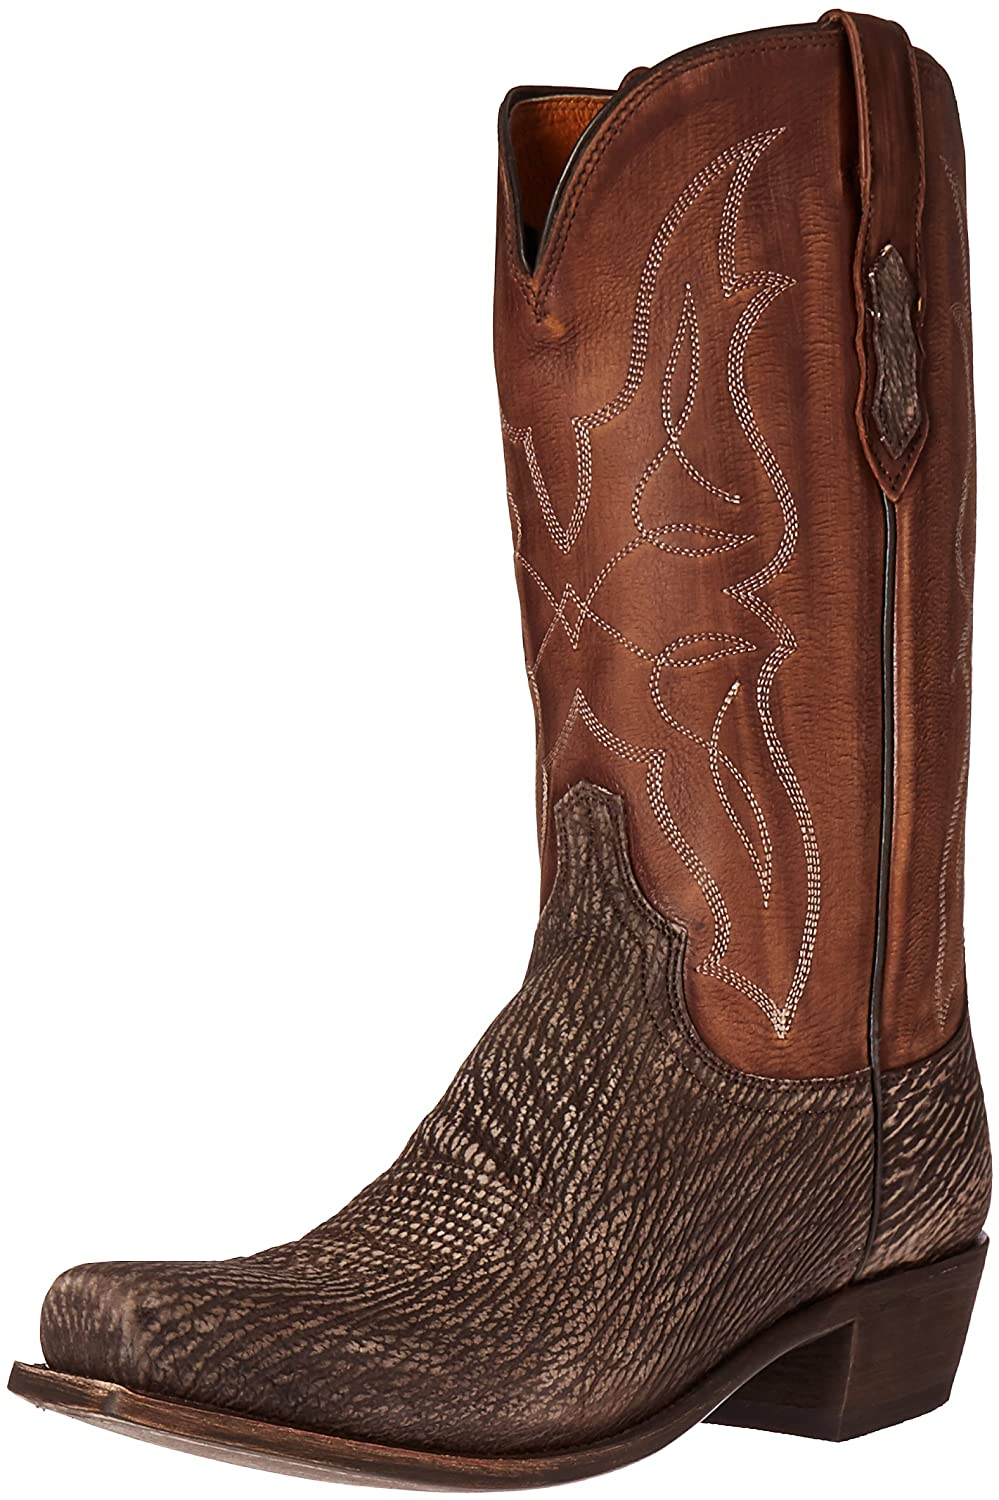 Lucchese Men's Carl-Chocolate Sanded Shark Riding Boot